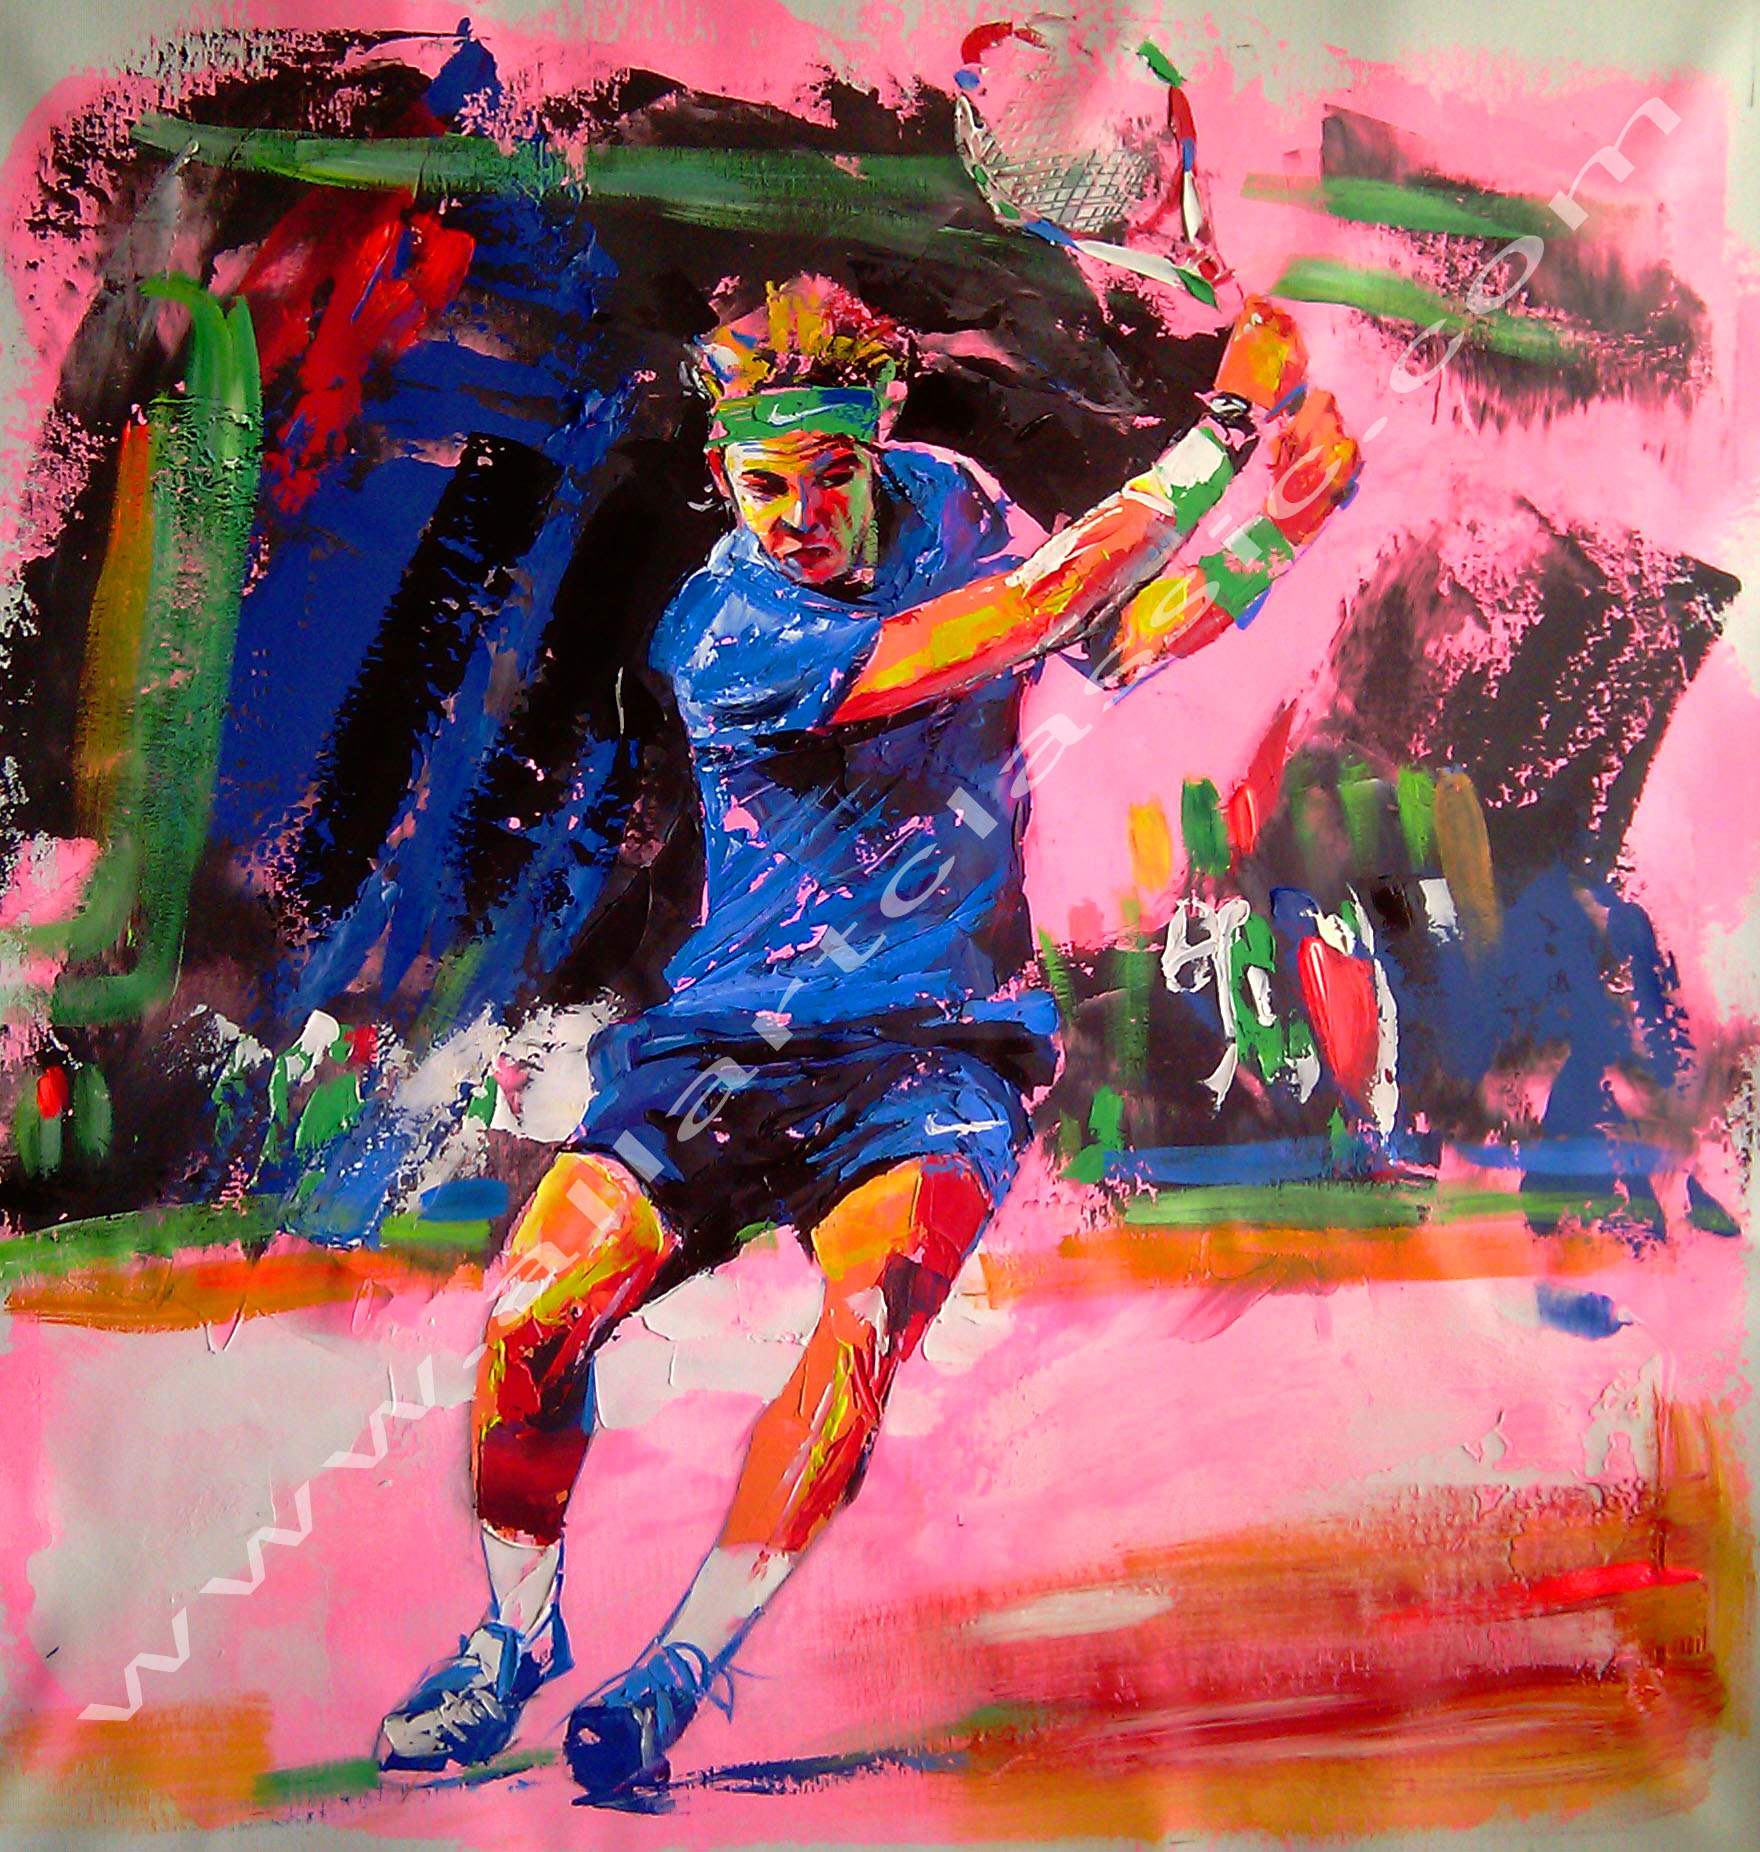 Original Oil Painting - Rafa Nadal